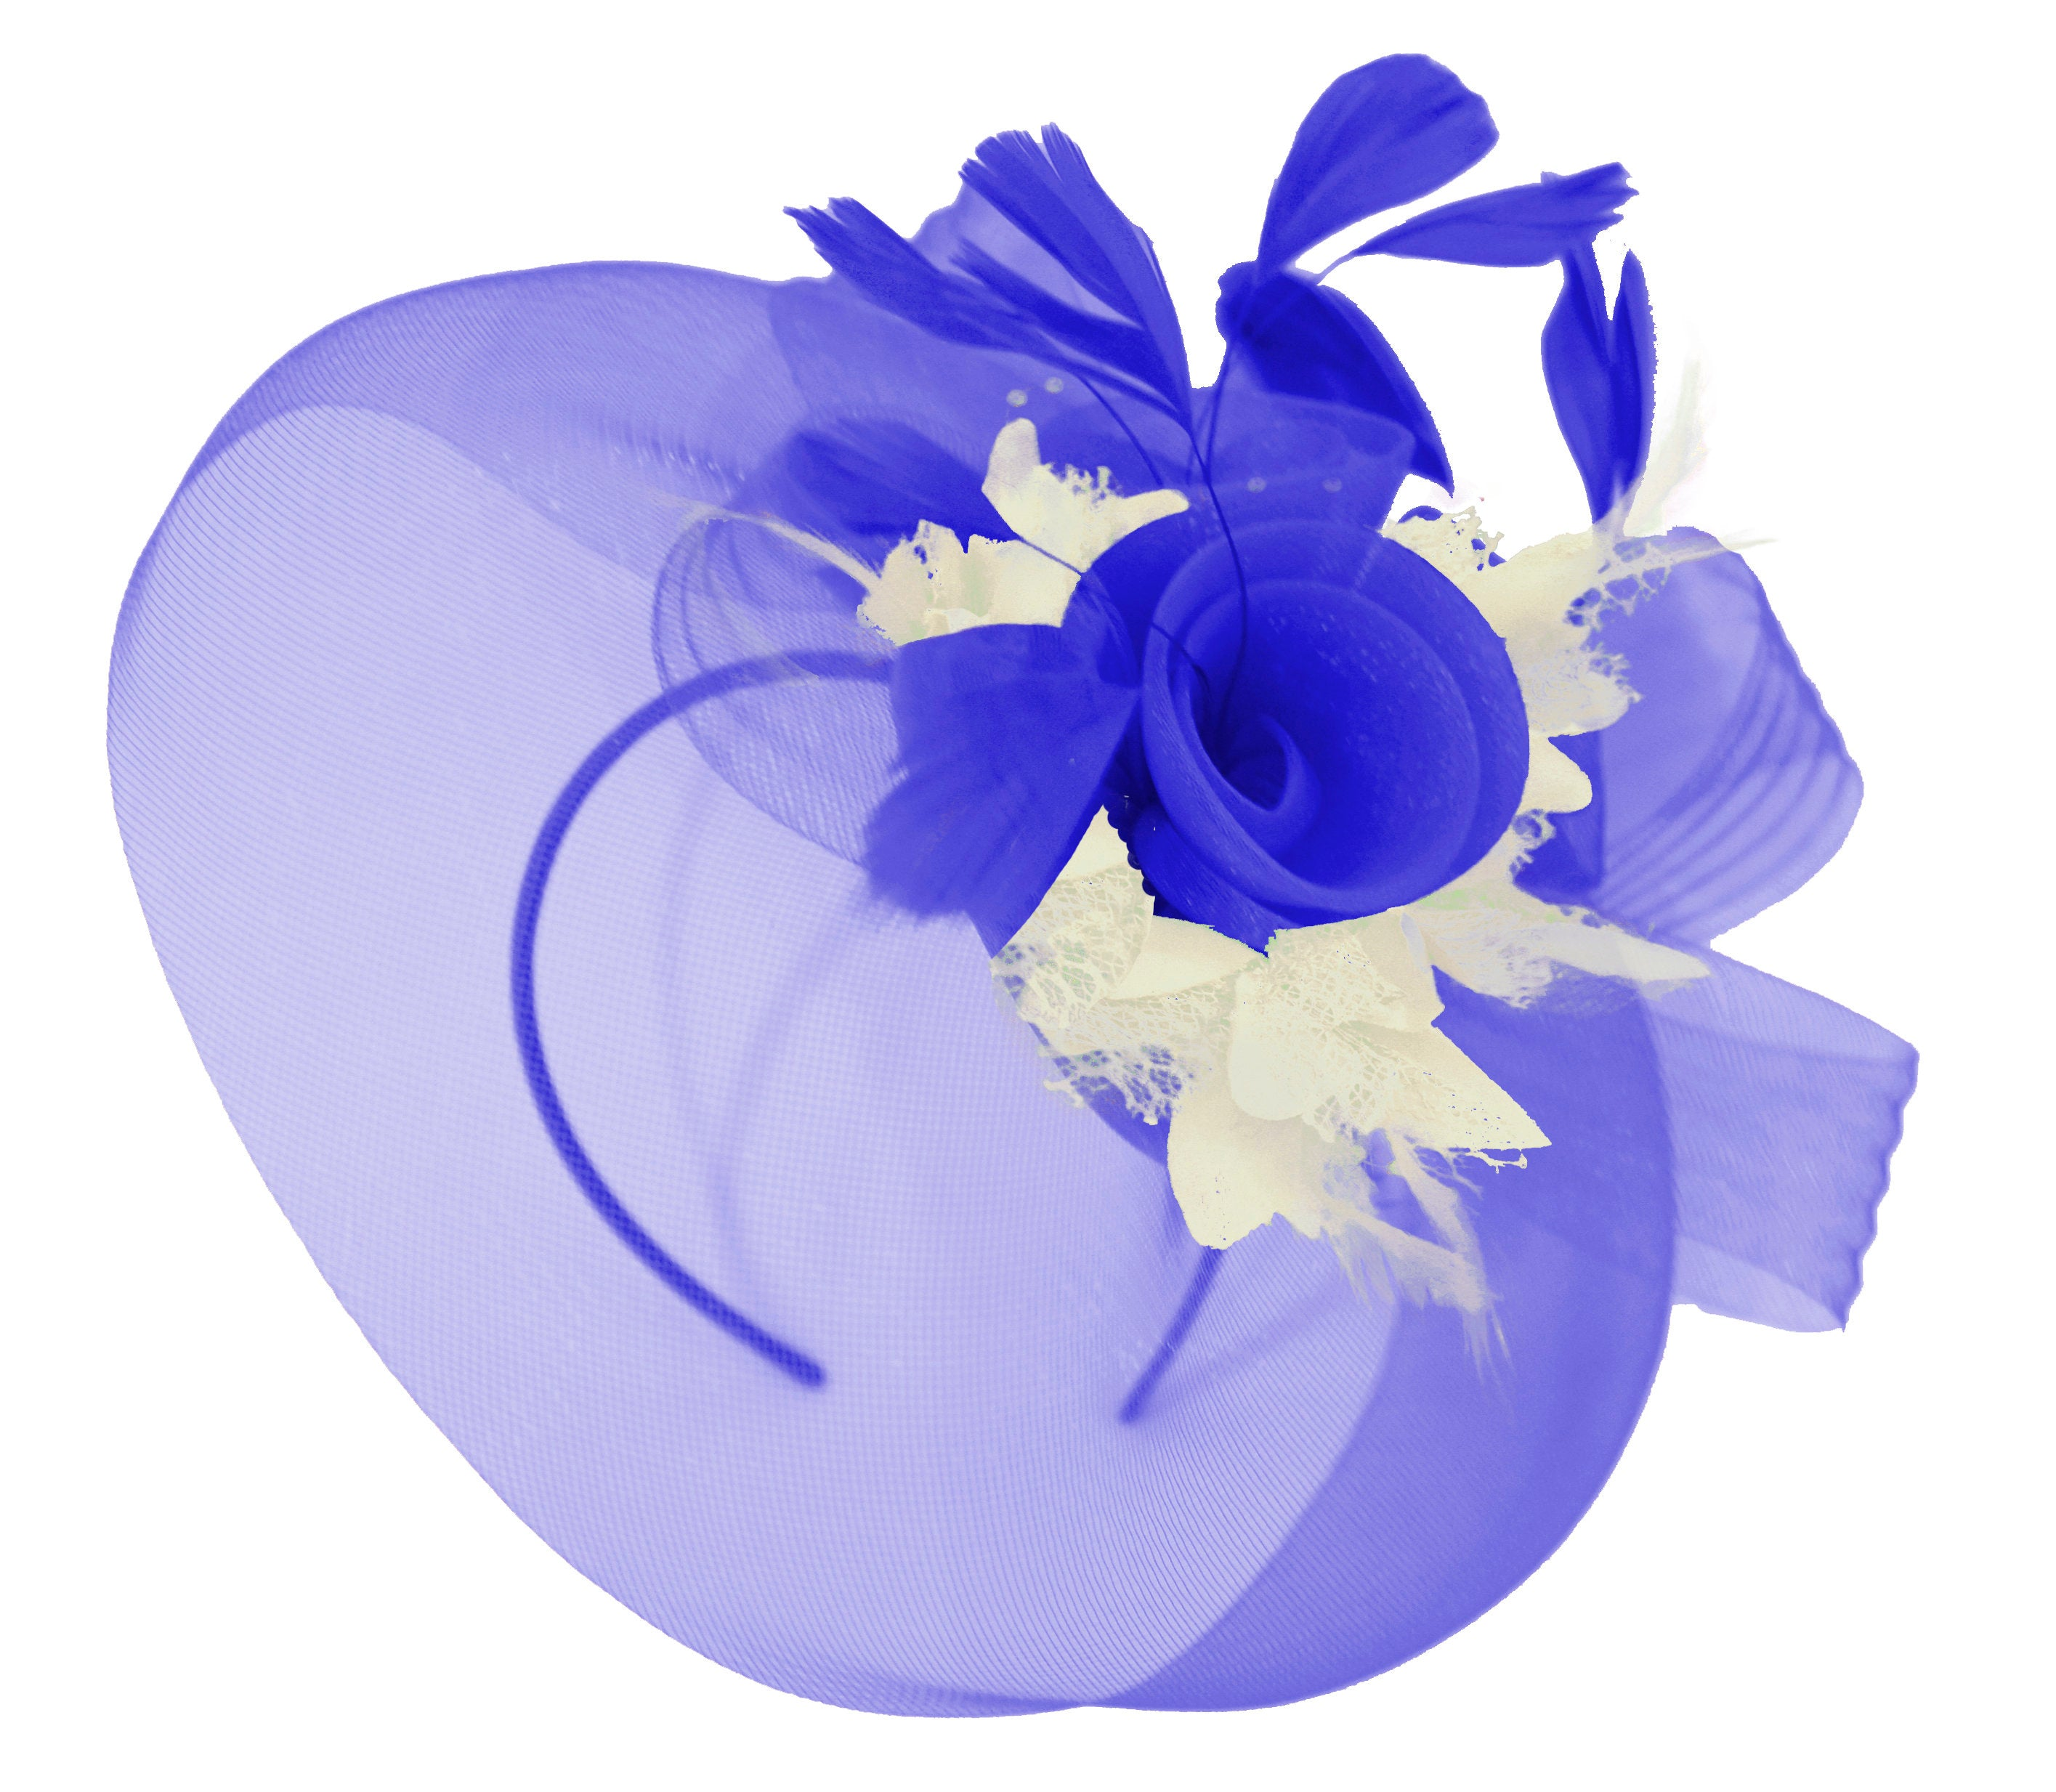 Caprilite Big Royal Blue and Cream Fascinator Hat Veil Net Hair Clip Ascot Derby Races Wedding Headband Feather Flower